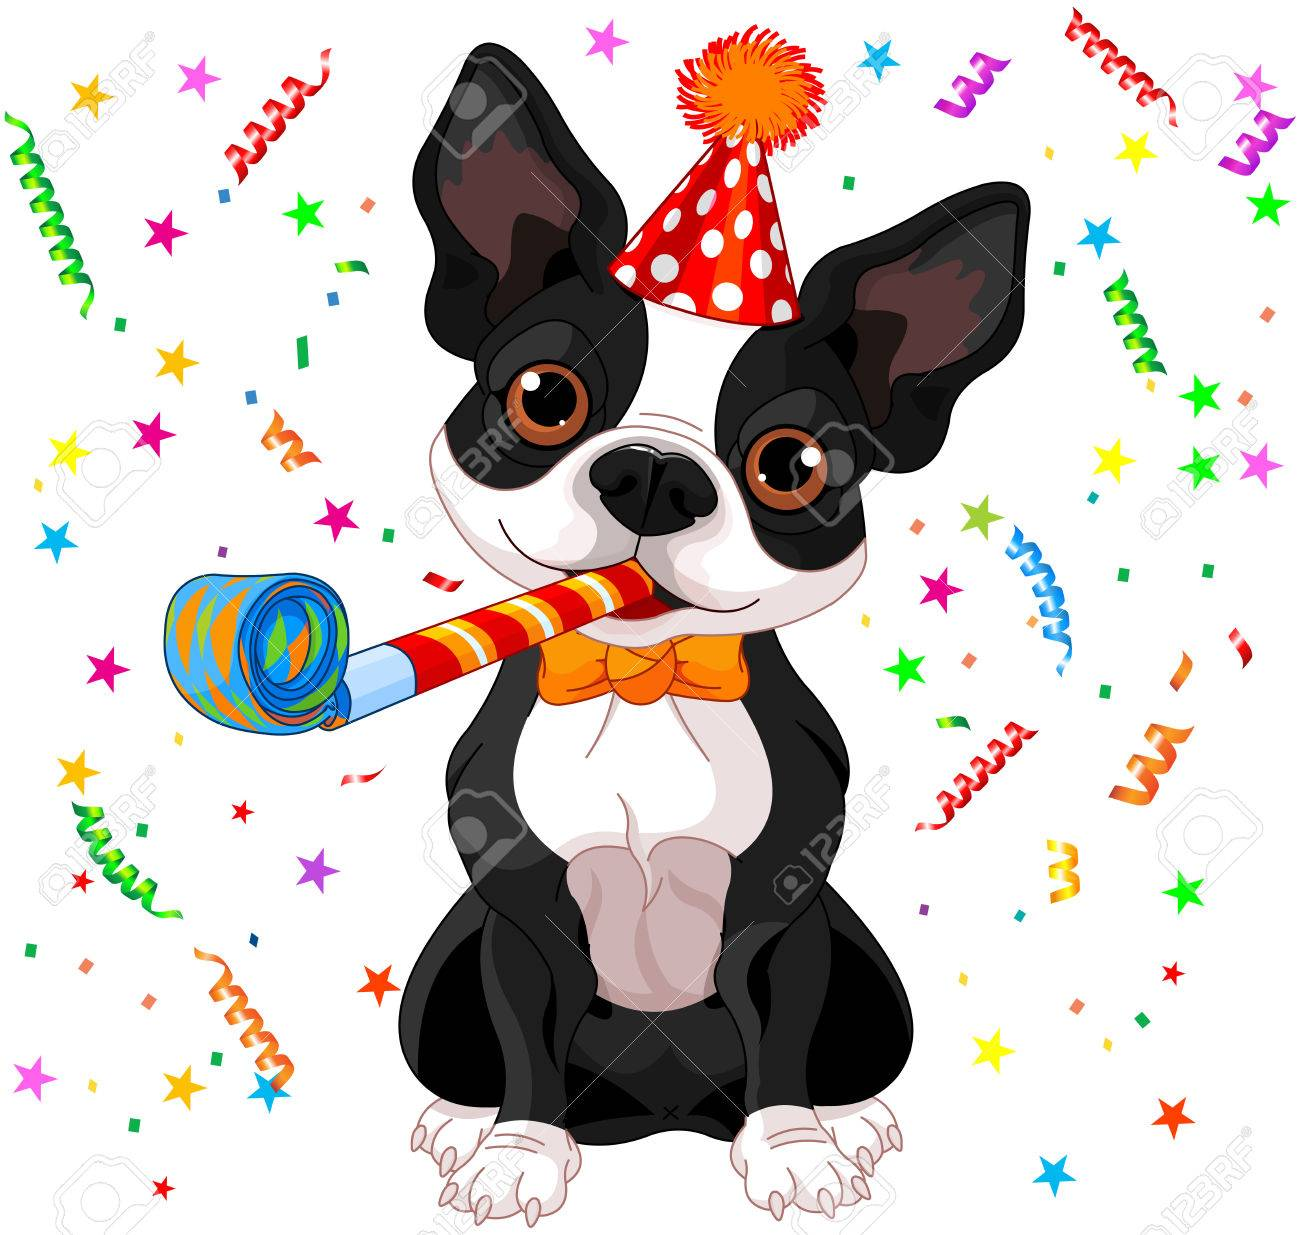 Excité en fin de journée: conseils? 35588778-illustration-of-cute-boston-terrier-celebrating